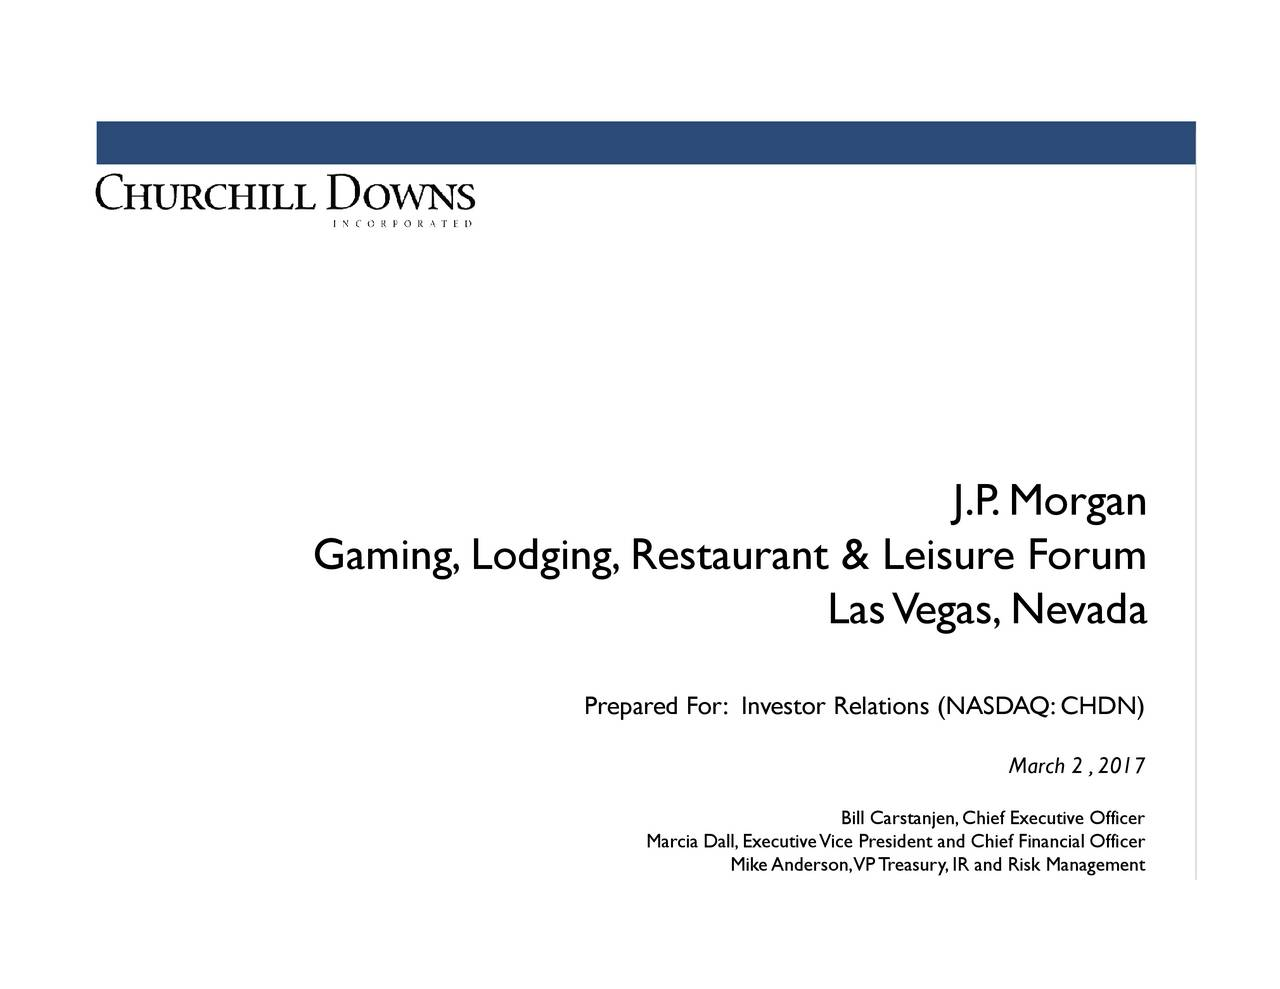 March 2 ,2017 J.P.Morgan Bill Carstanjen,Chief Executive Officer LasVegas,Nevada MikeAnderson,VPTreasury,IR and Risk Management Marcia Dall,ExecutiveVice President and Chief Financial Offi Prepared For: Investor Relations (NASDAQ:CHDN) Gaming,Lodging,Restaurant & Leisure Forum